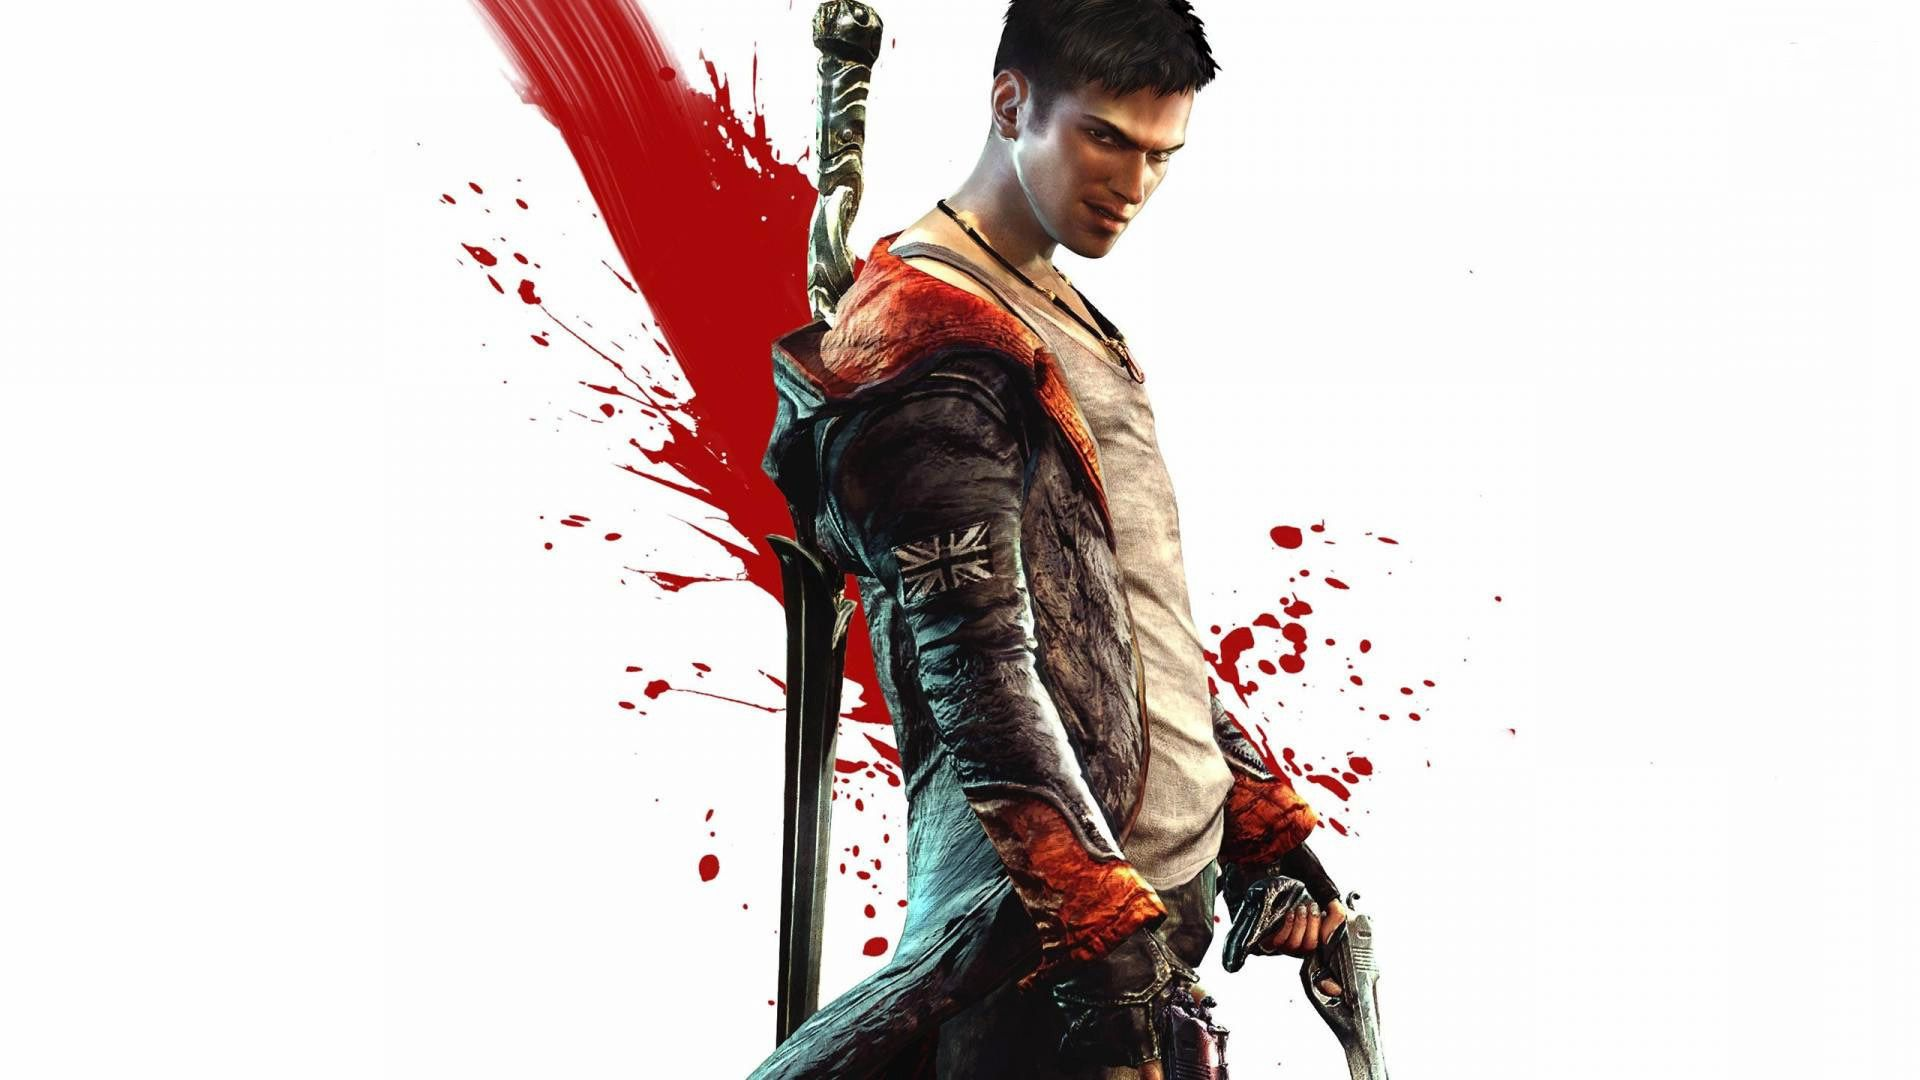 Img2677g 19201080 dante dmc 5 pinterest explore devil may cry game concept and more voltagebd Images